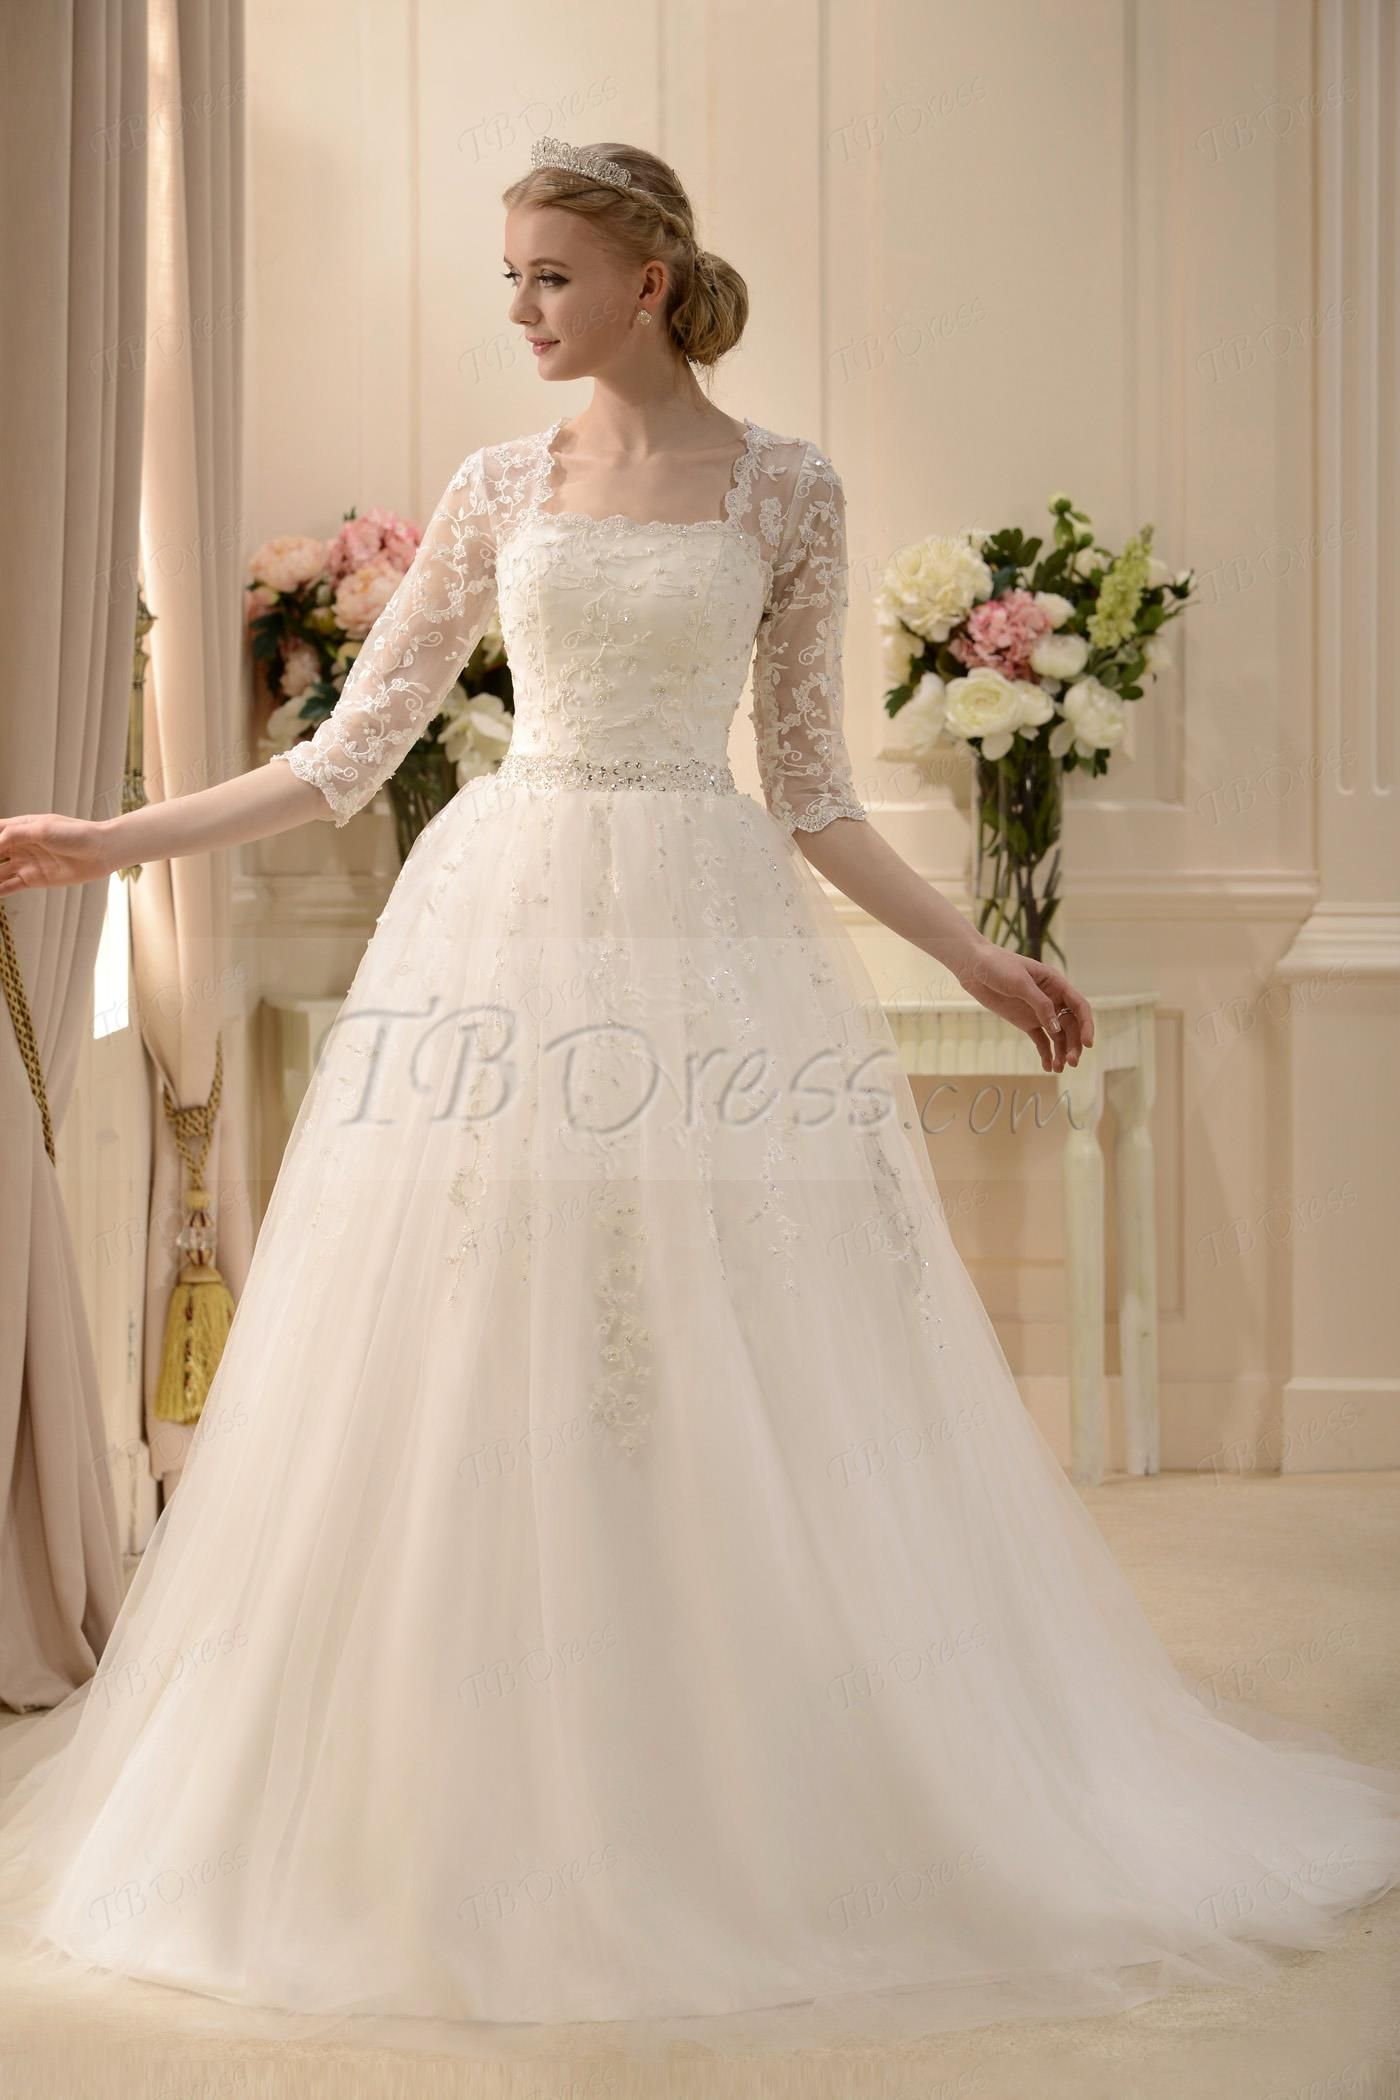 http://www.tbdress.com/product/Elaborate-A-Line-Square-3-4-Length-Sleeves-Floor-Length-Court-Beaded-Wedding-Dress-10566333.html